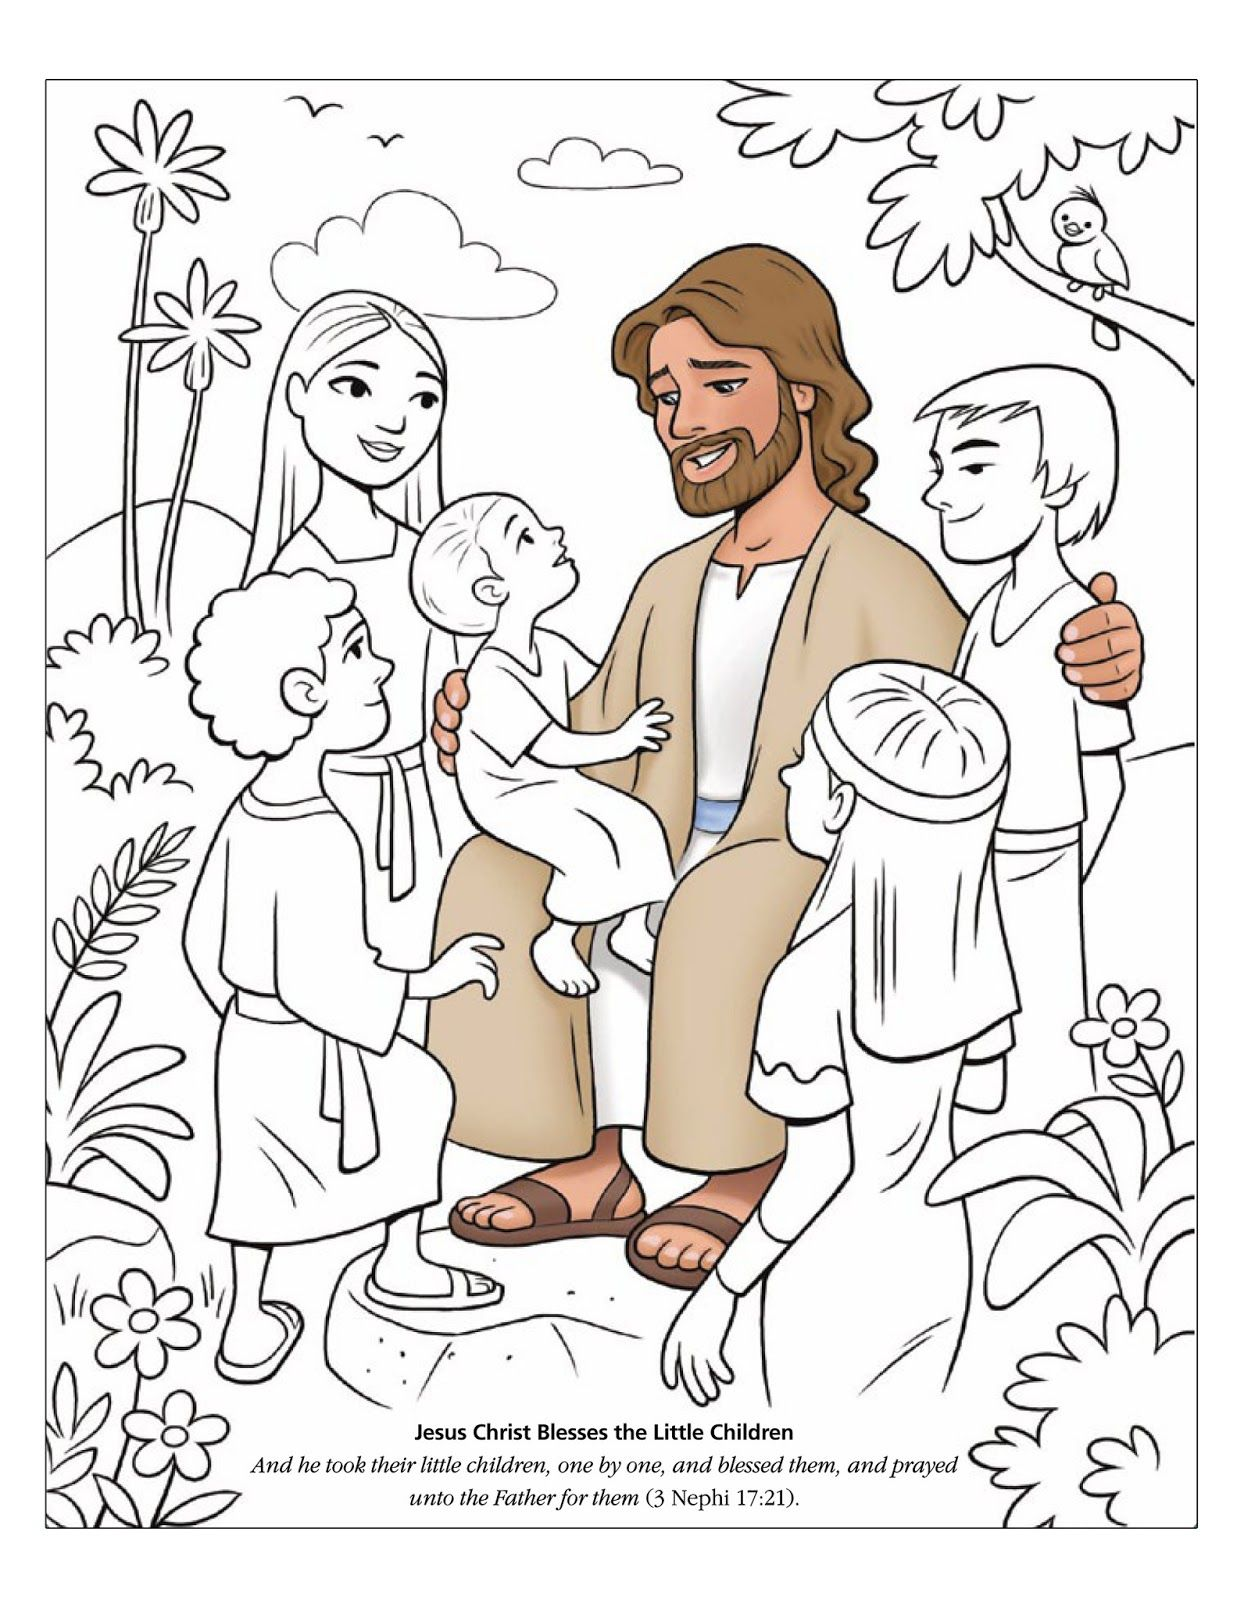 Lds Teaching Visuals Coloring Page Jesus Blesses The Children Jesus Coloring Pages Sunday School Coloring Pages Bible Coloring Pages